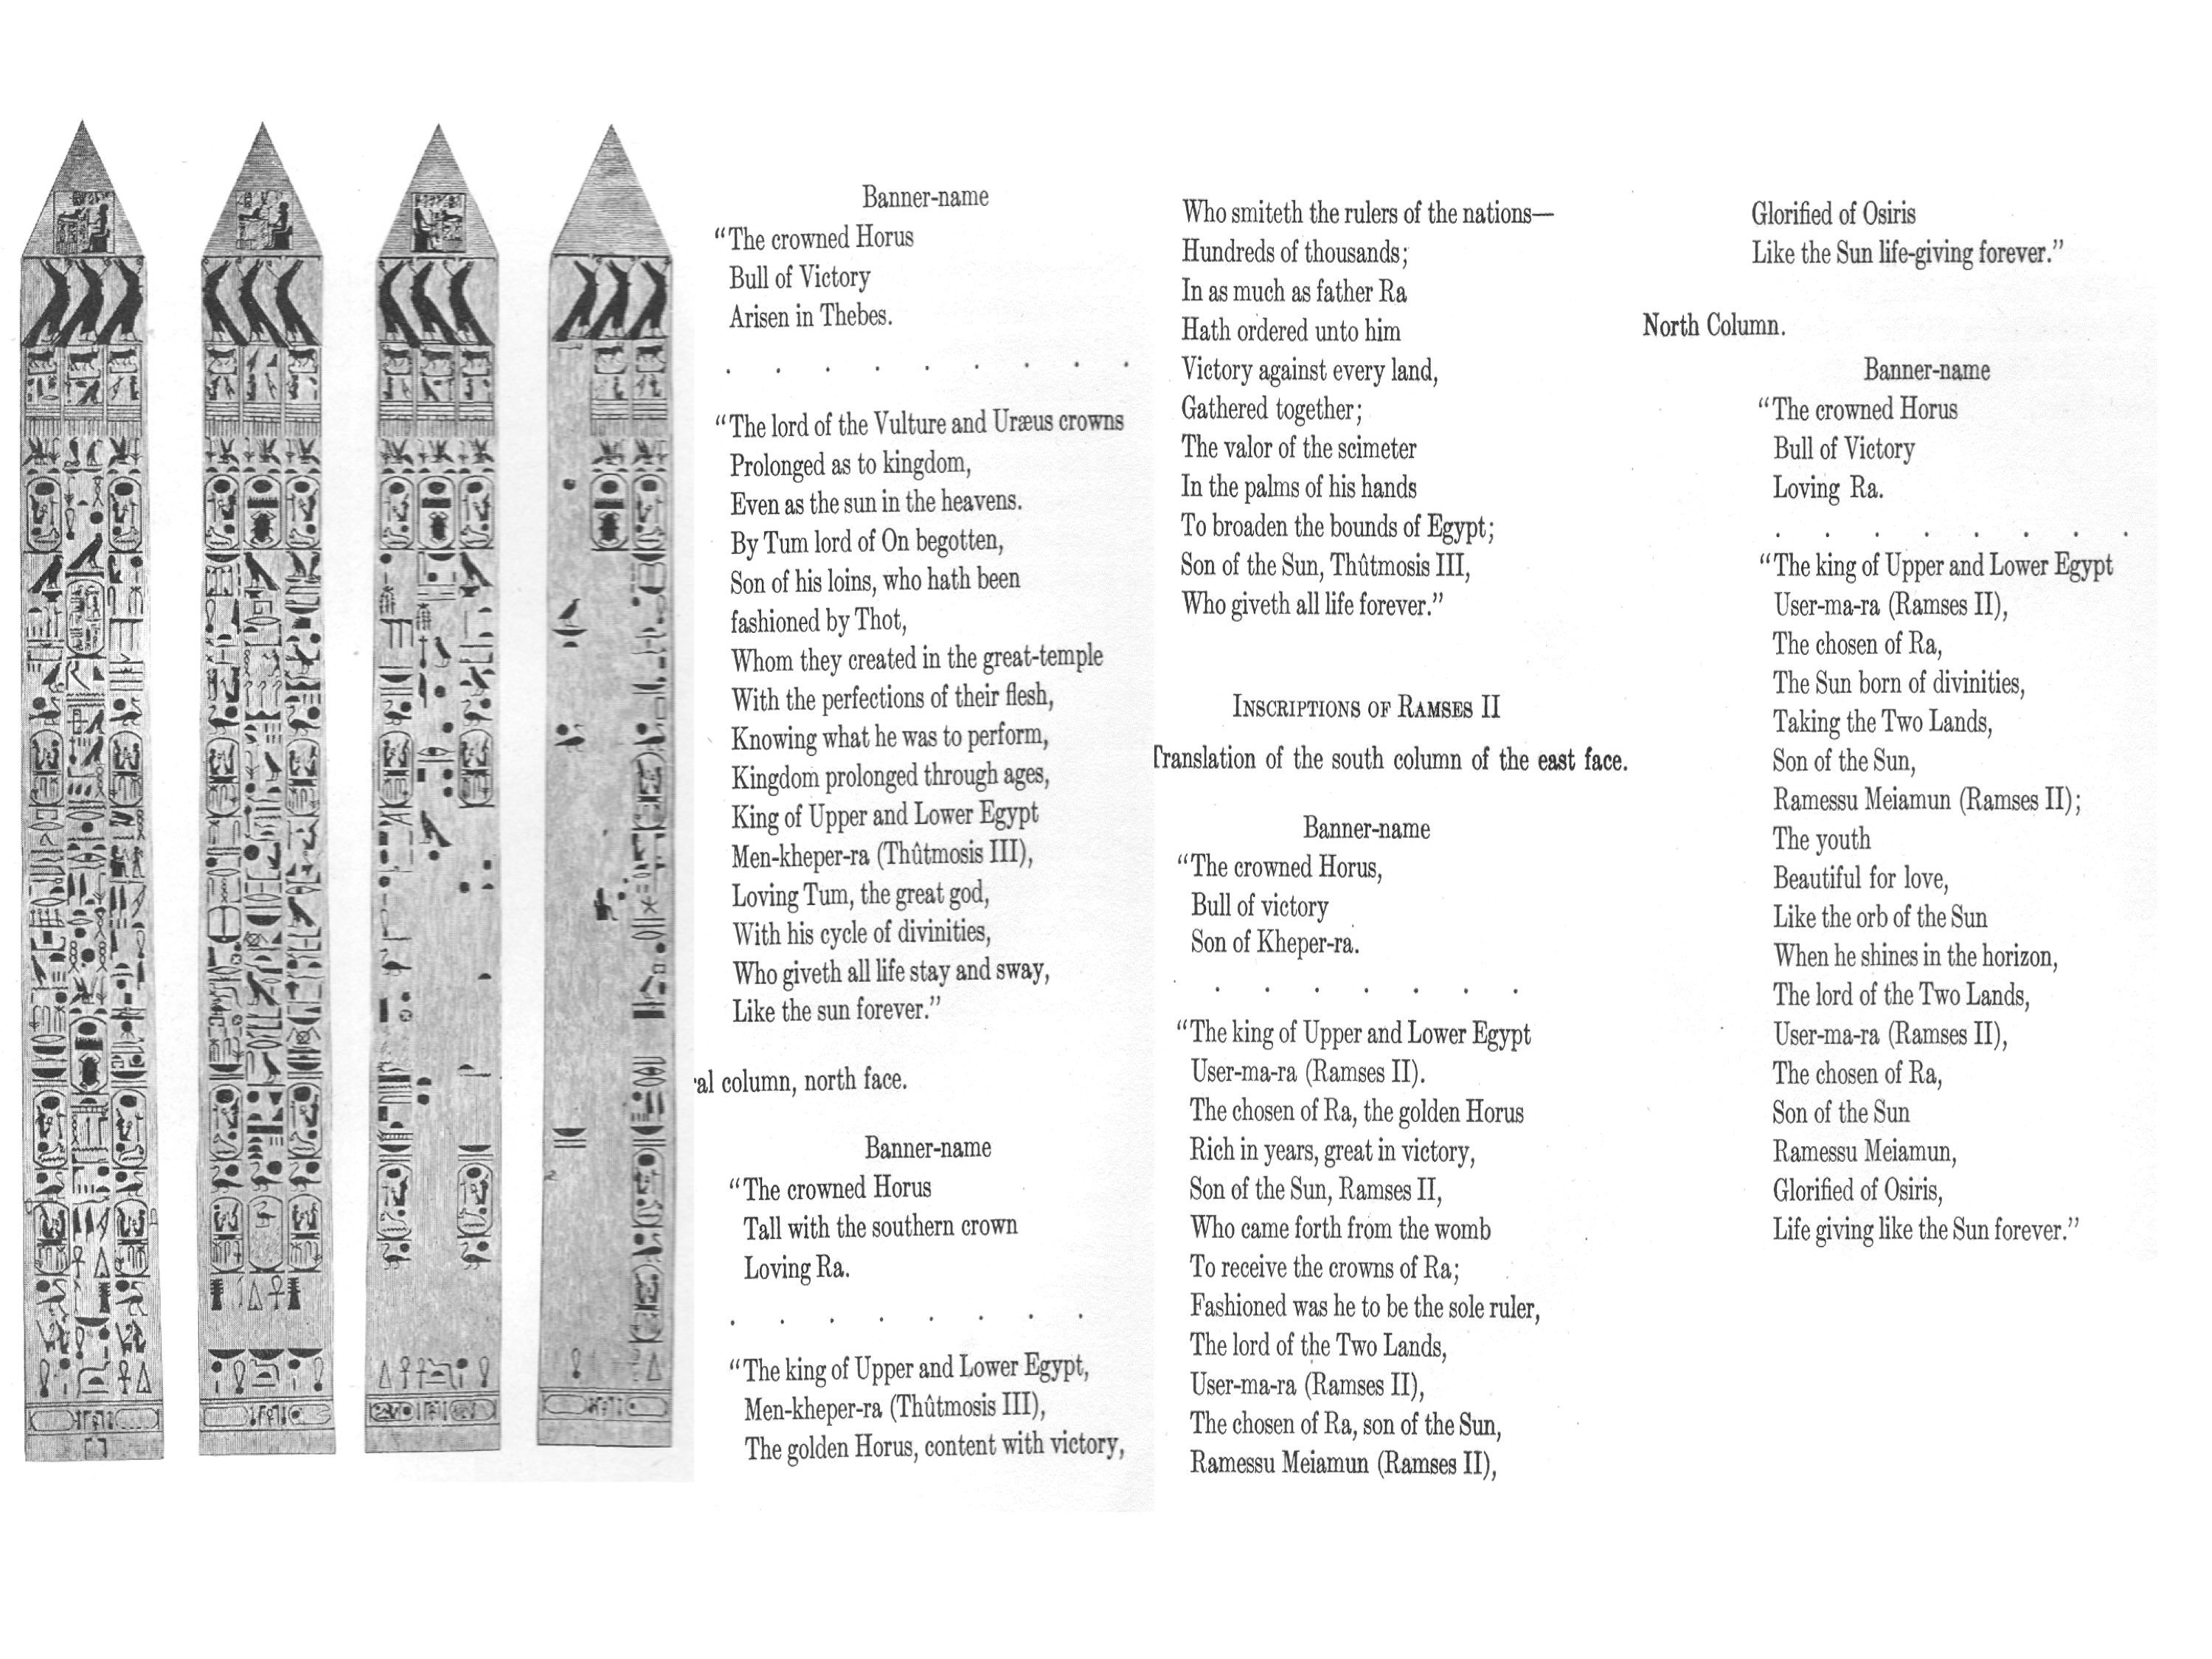 What Does It Mean Chapters Xiv Xv Doents The History Of New York City Obelisk From Its Origins To